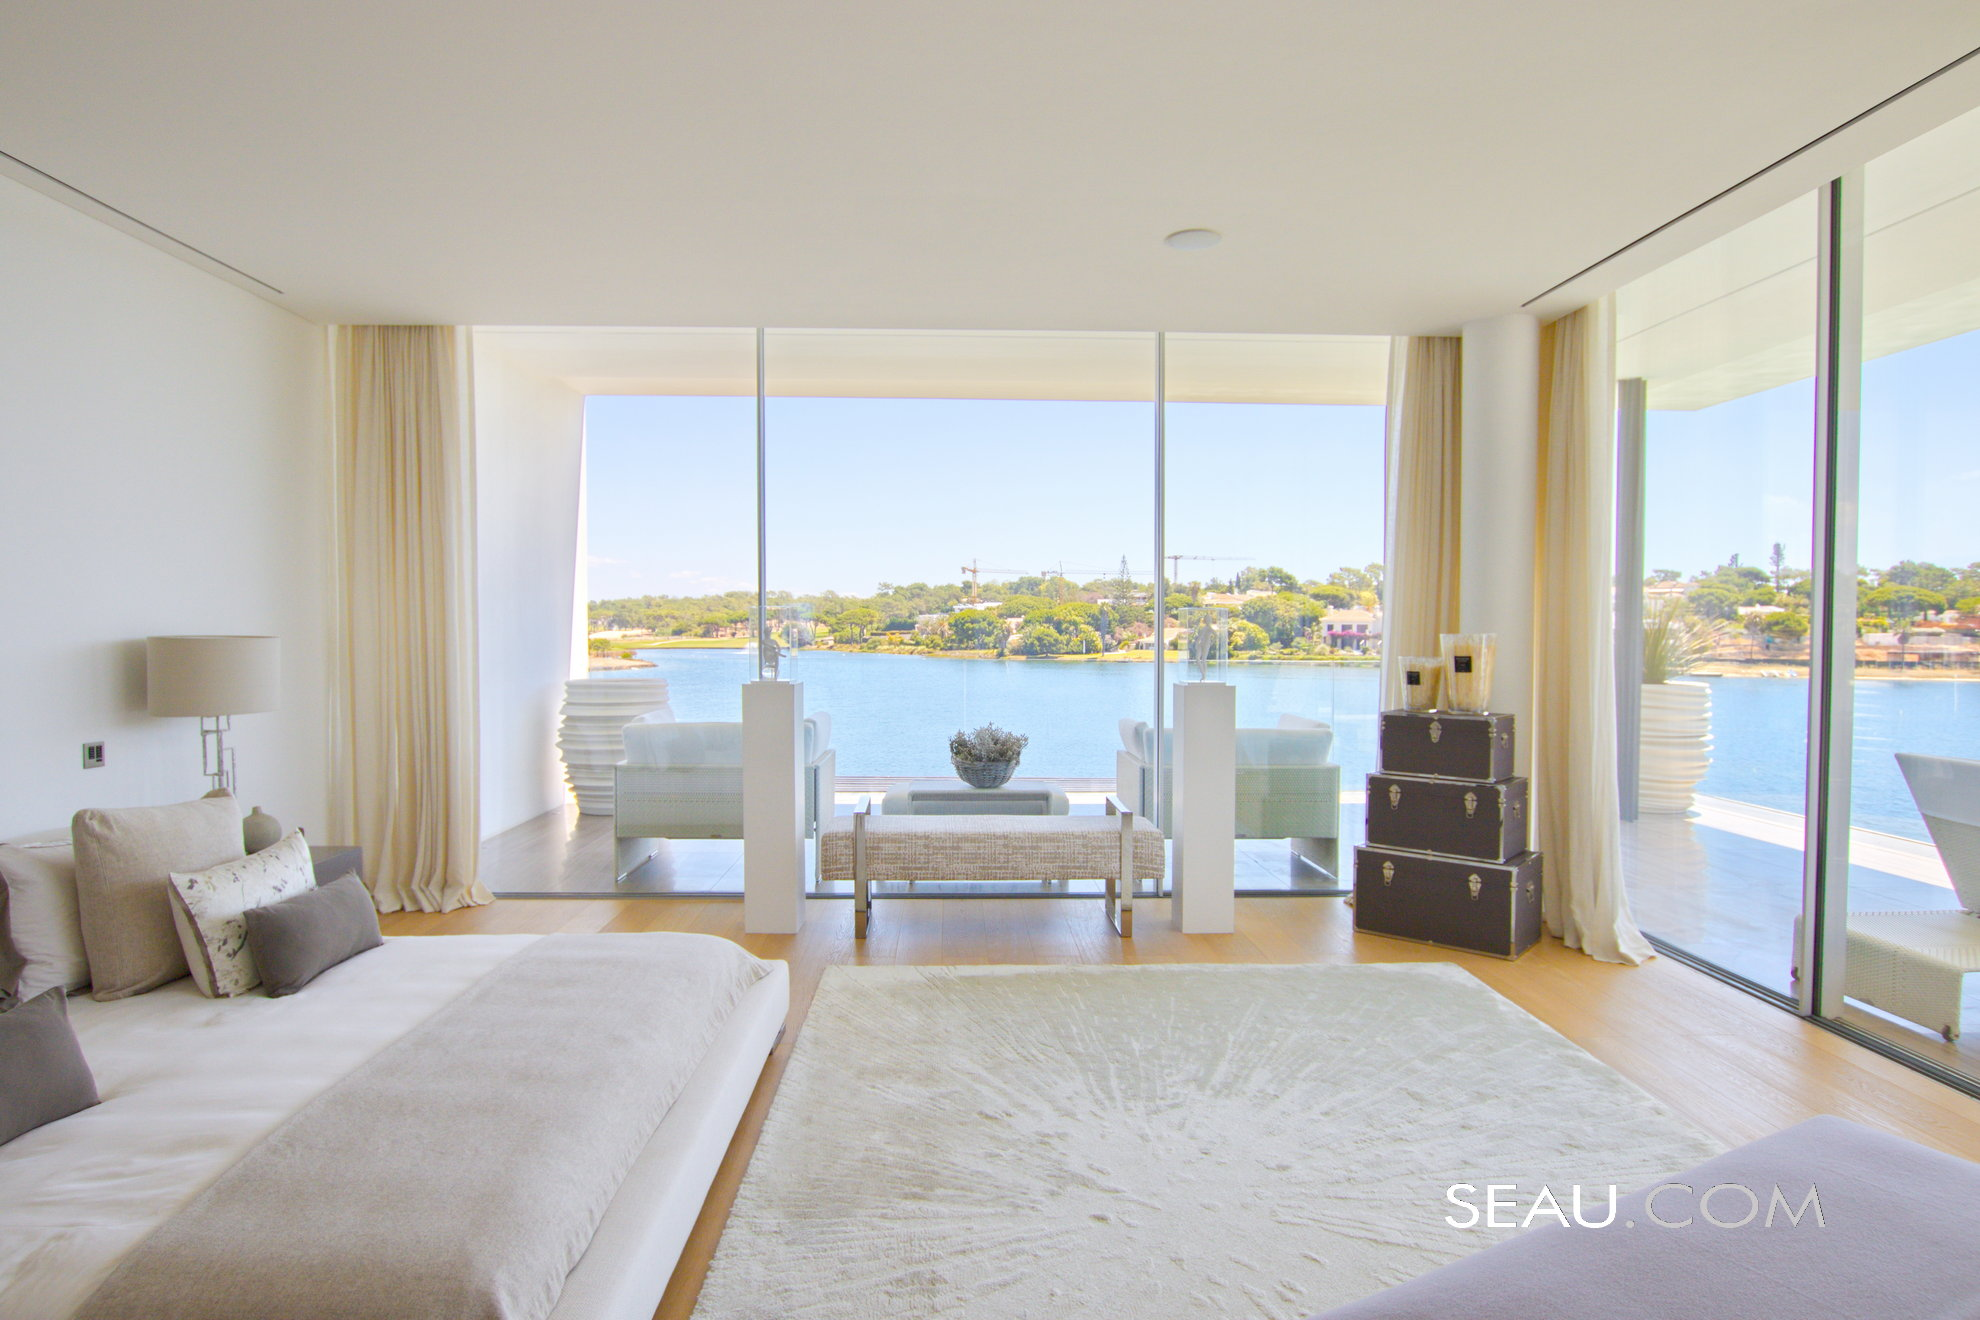 Master Suite with a breathtaking view and private terrace. This room also offers two large dressing rooms, a stylish bathroom with double sinks and a walk in rain shower.